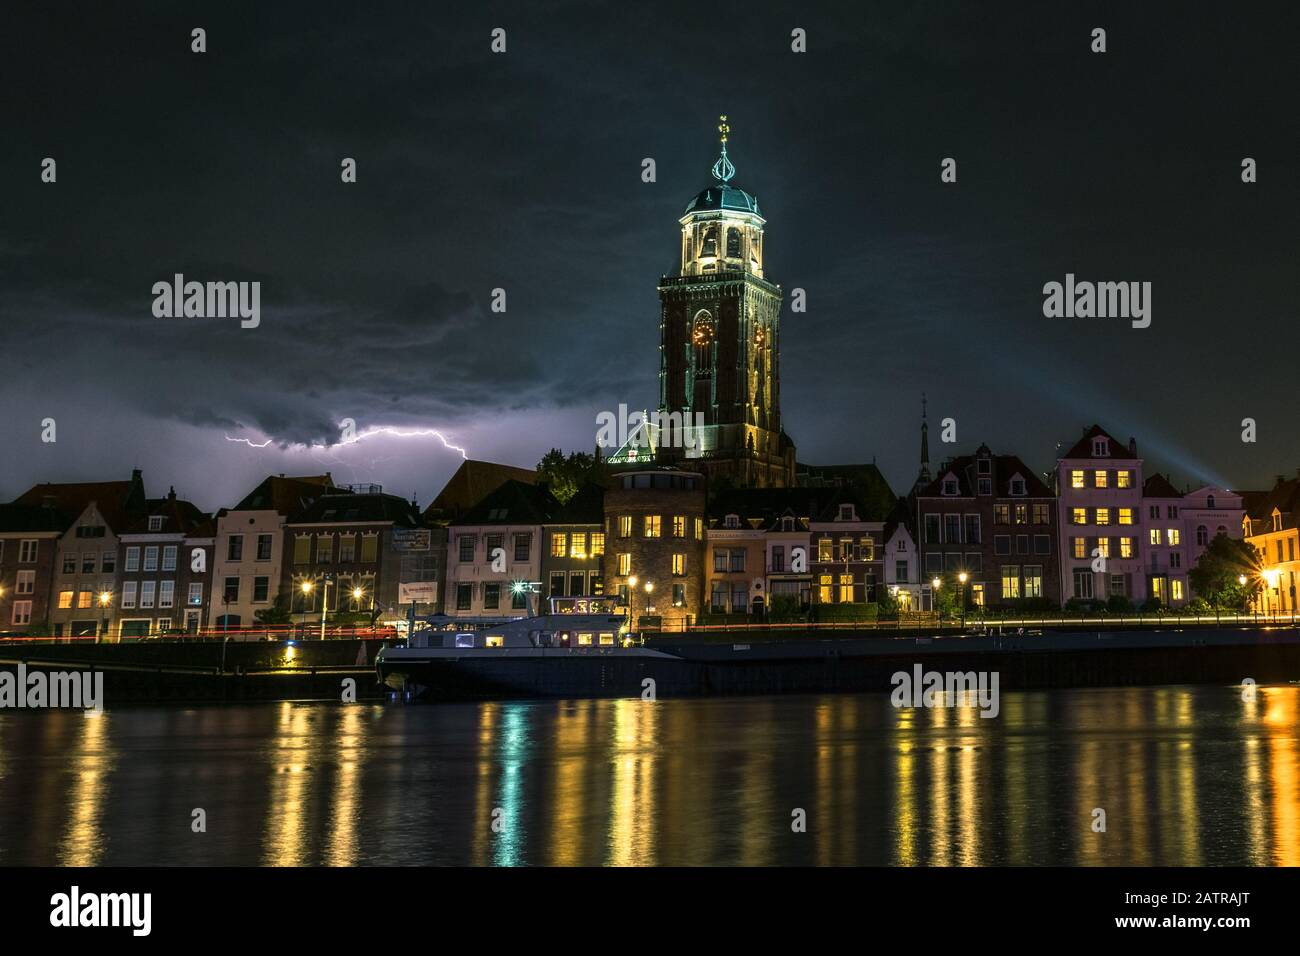 Stunning night image of lightning over a river and historic city of Deventer, the Netherlands. Stock Photo